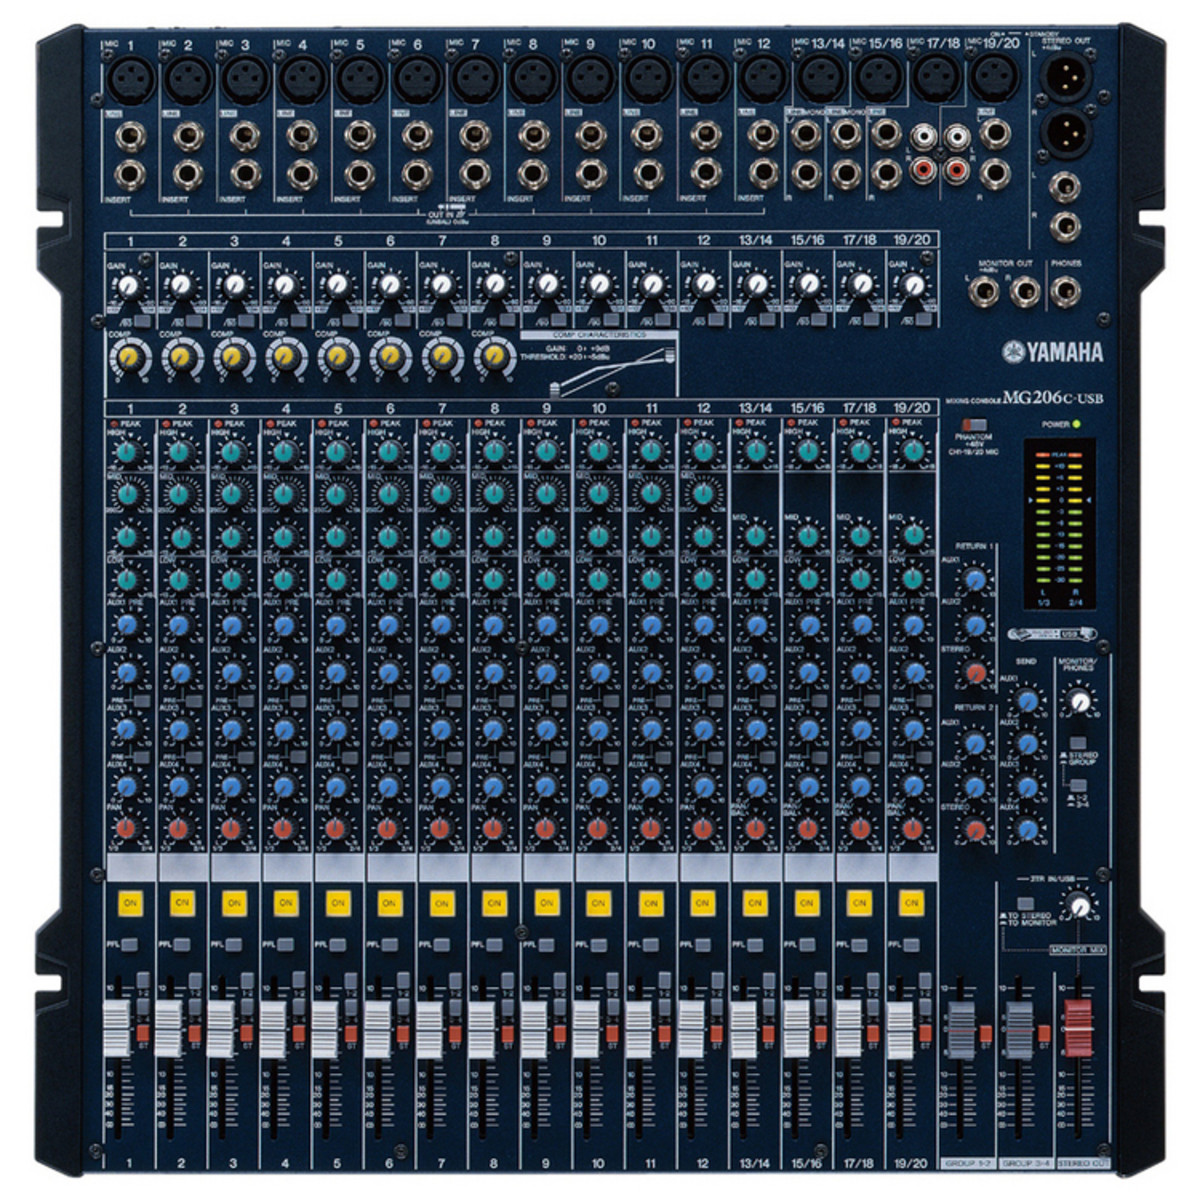 Table De Mixage Numérique Occasion Yamaha Mg206c Usb Mixer Nearly New